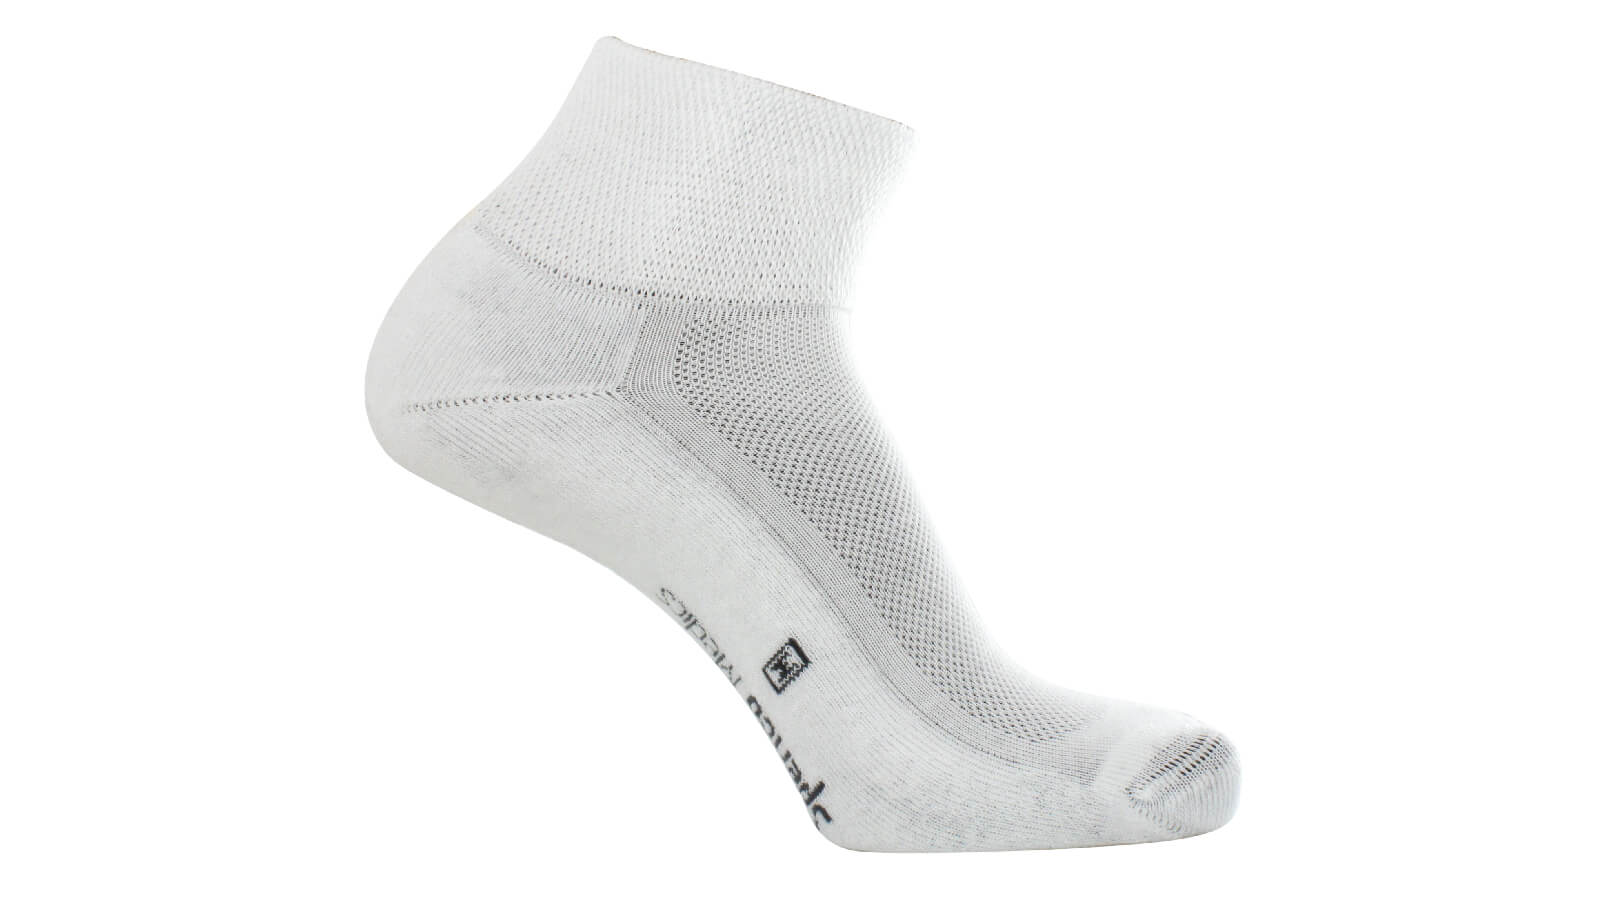 Spenco medics diabetic plus crew socks in white